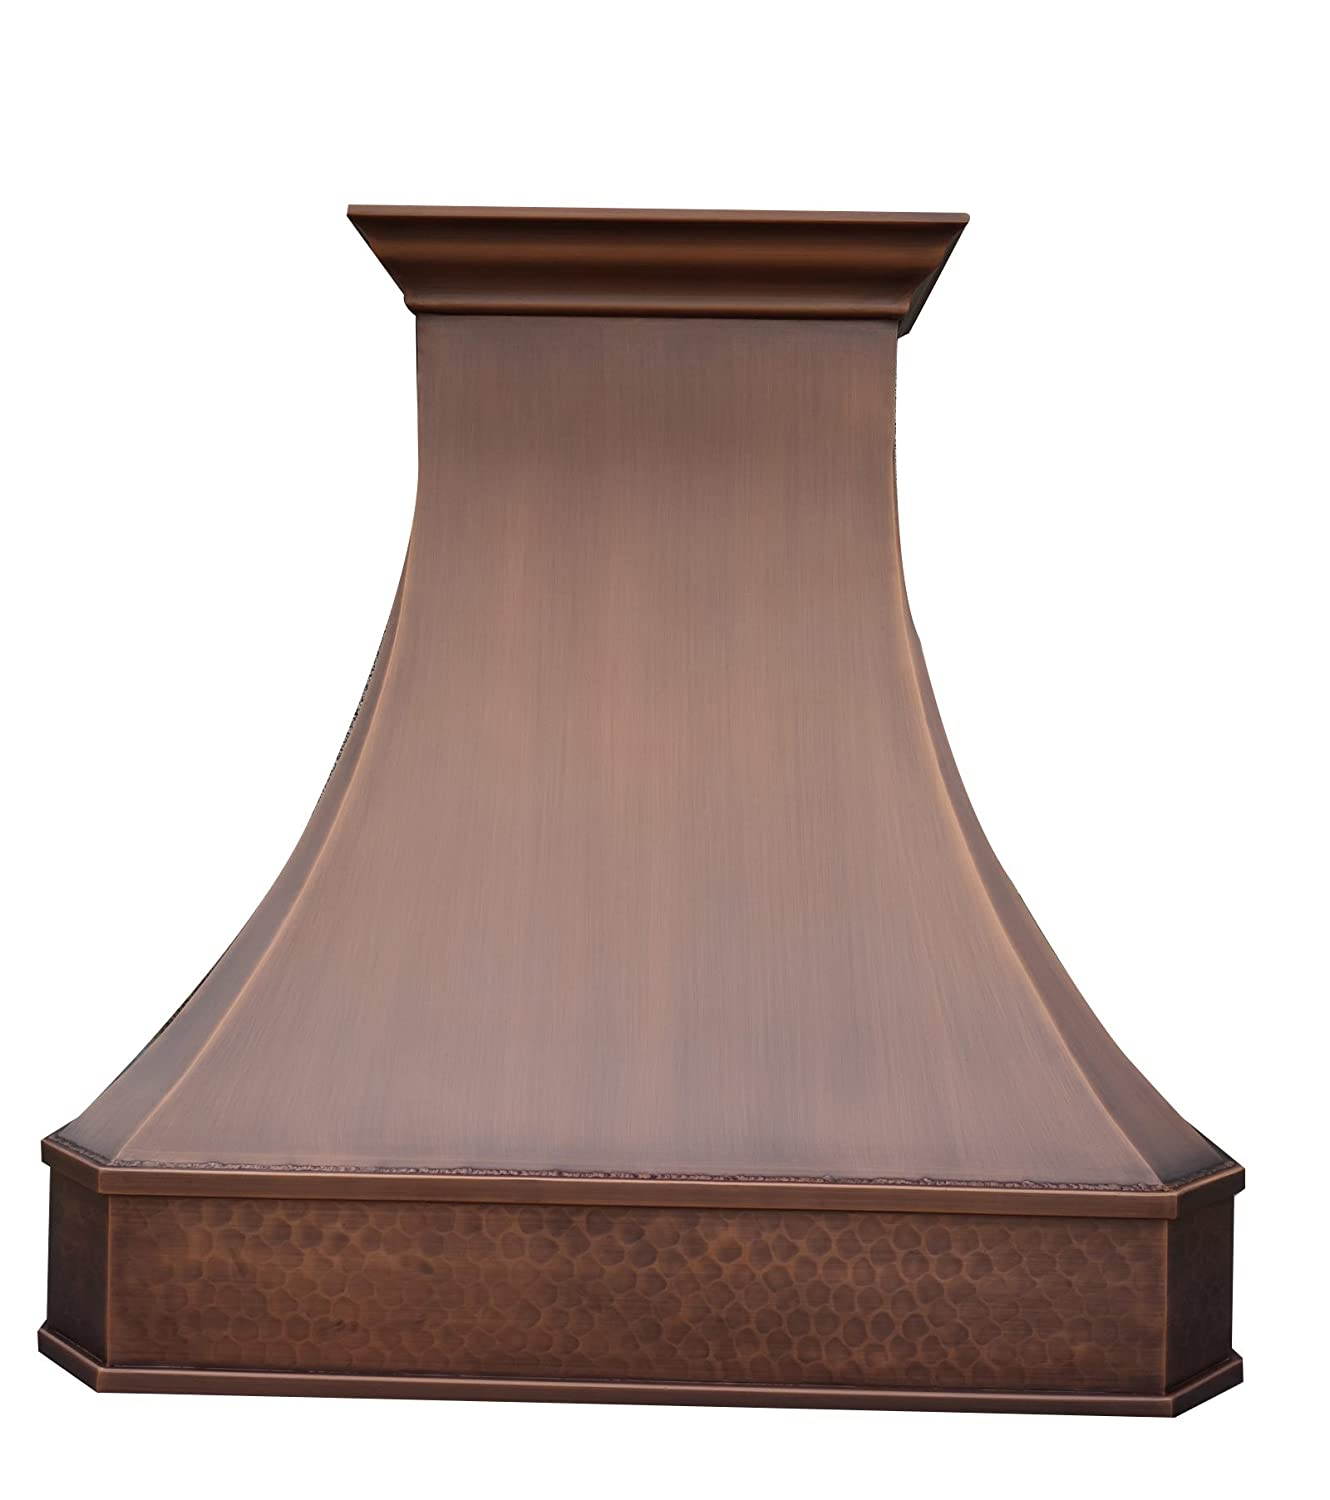 """Sinda Copper Range Hood with High Airflow Centrifugal Blower, Includes SUS 304 Liner and Baffle Filter, High CFM Vent Motor, Wall/Island/Ceiling Mount, Width 30,36,42,48 in (W30""""xH27"""" Wall)"""